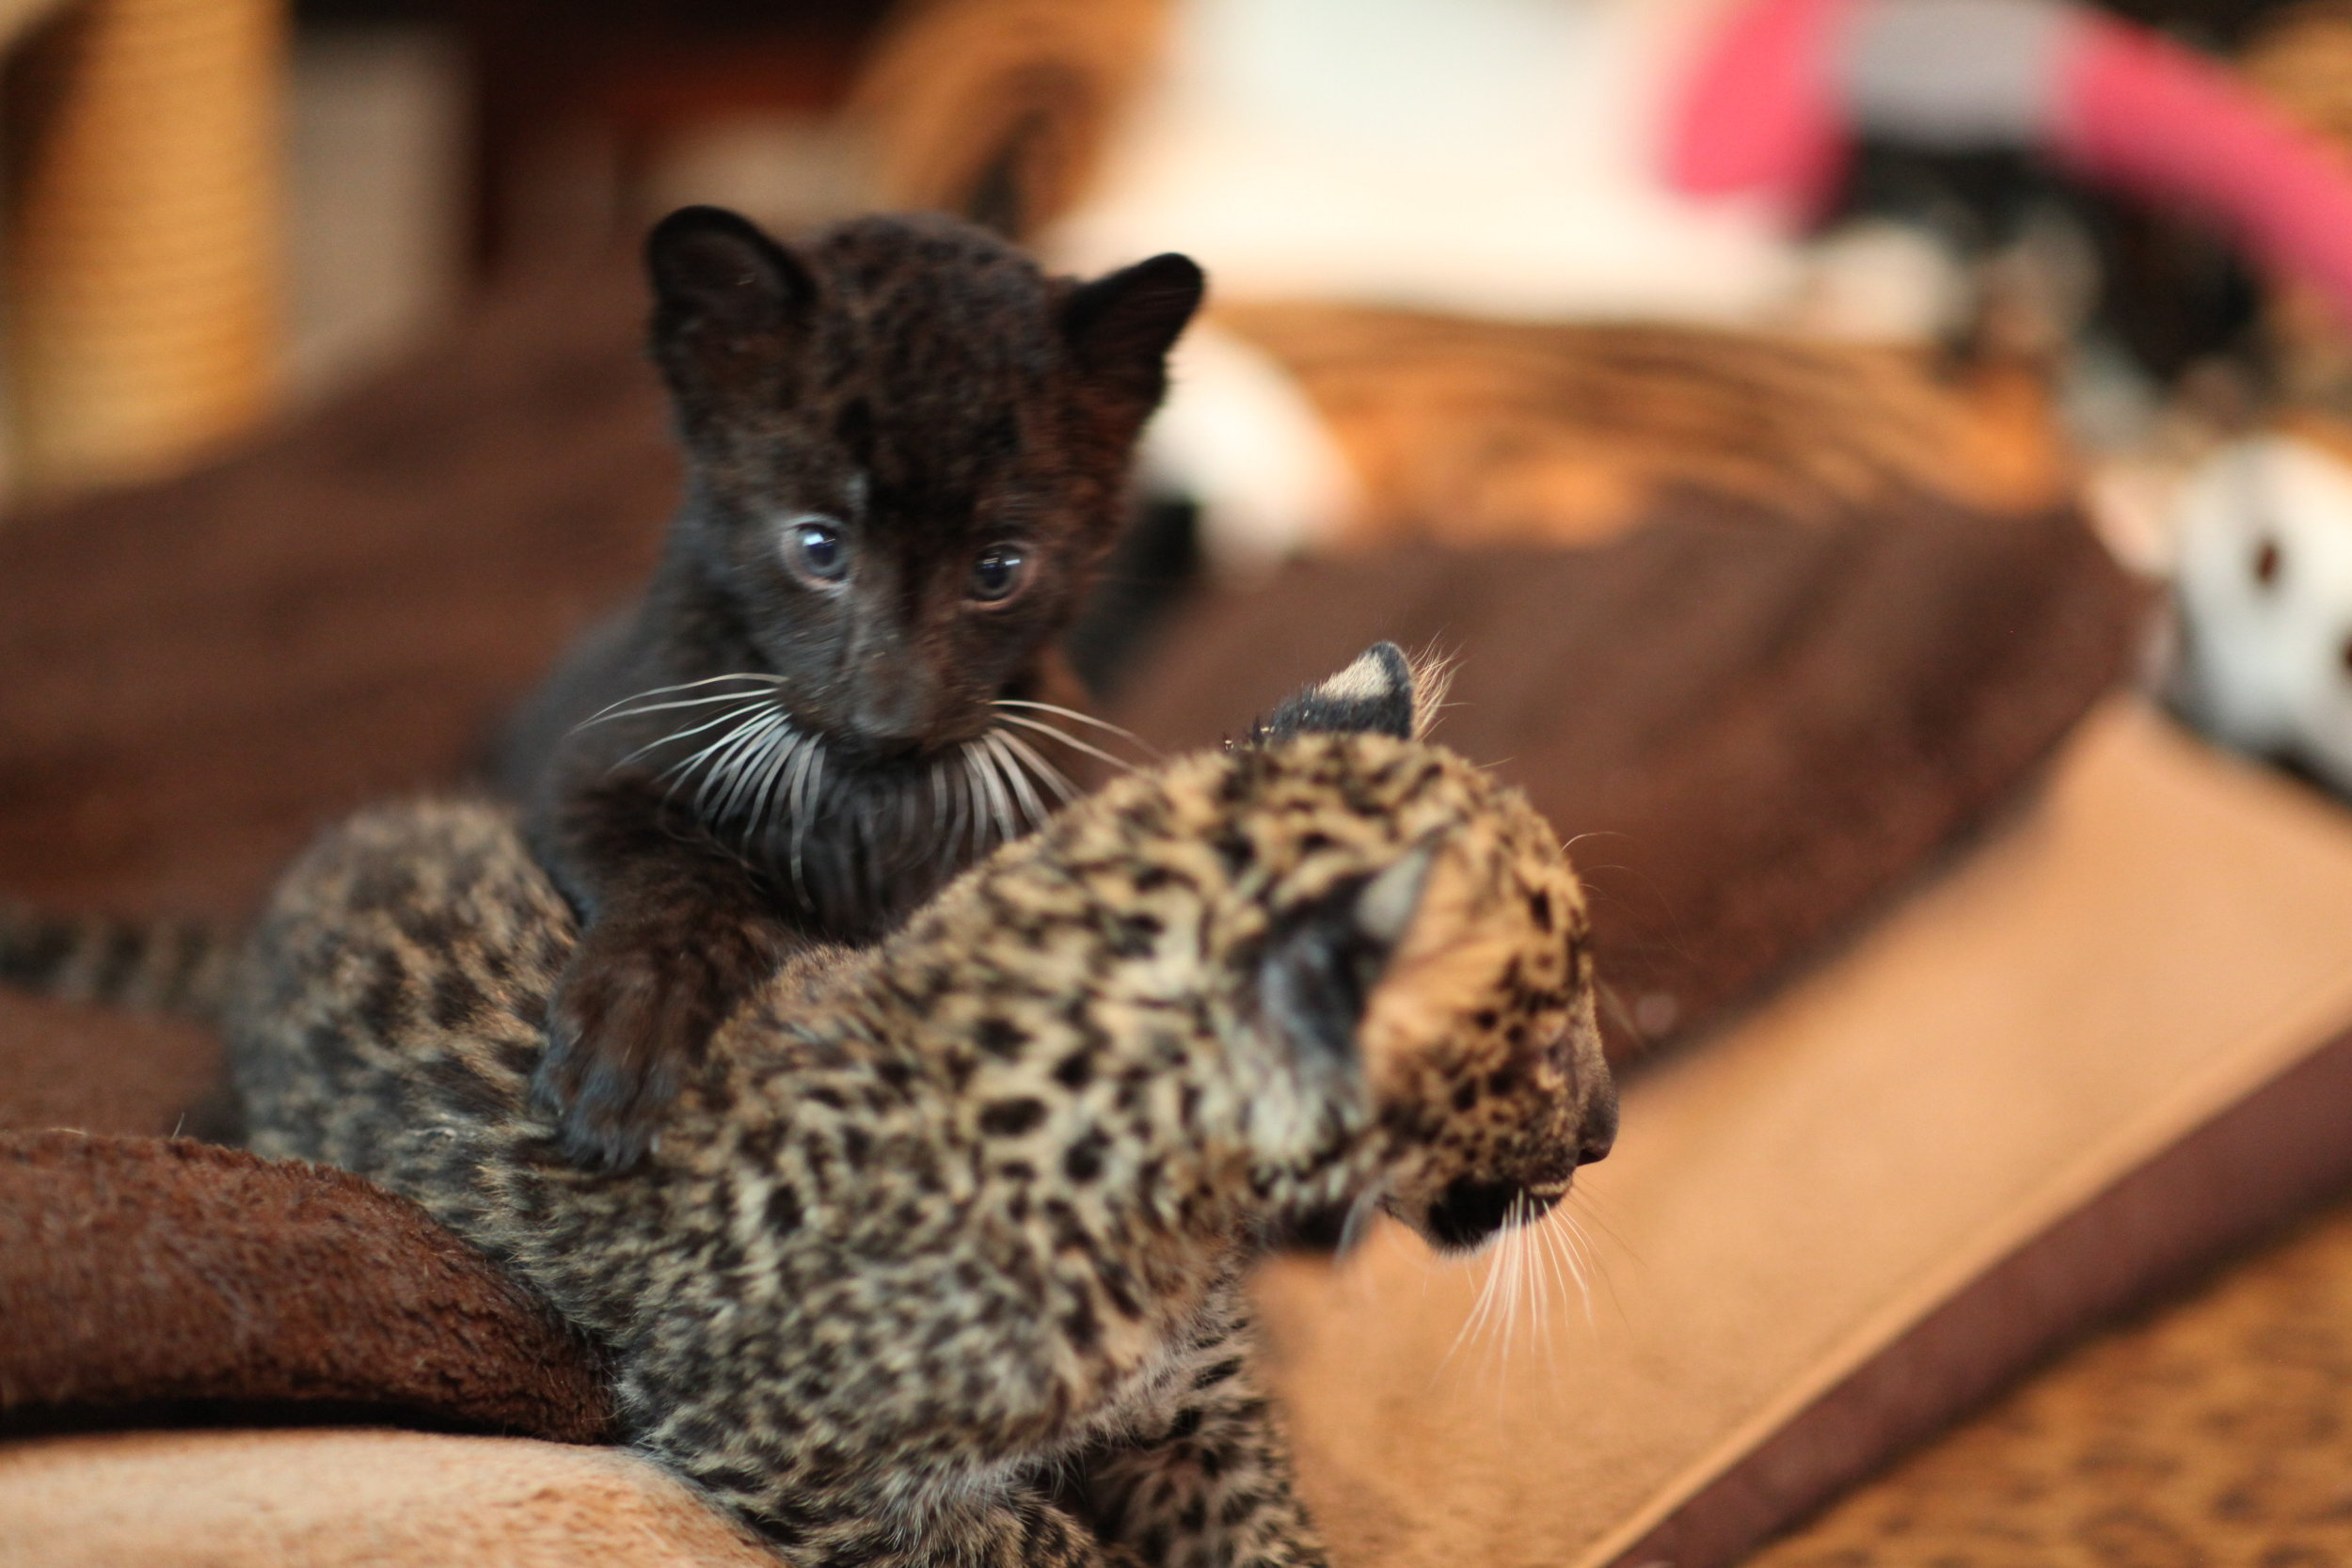 leopards_1_20170915_1285744766-view=image&format=raw&type=orig&id=165.jpg